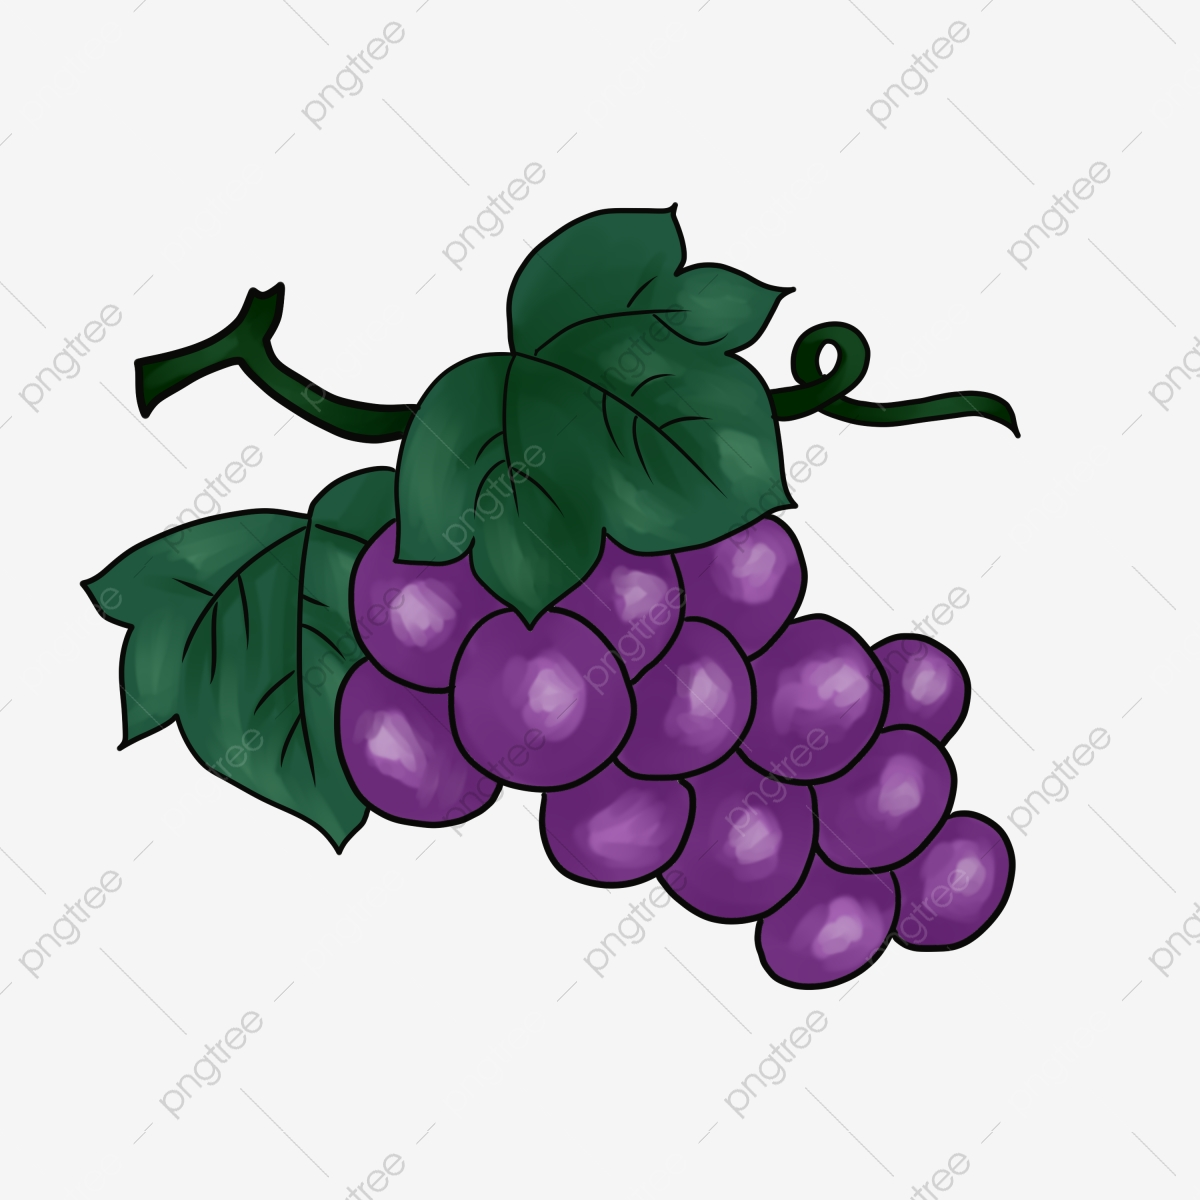 Hand painted harvest season. Grapes clipart autumn fruit